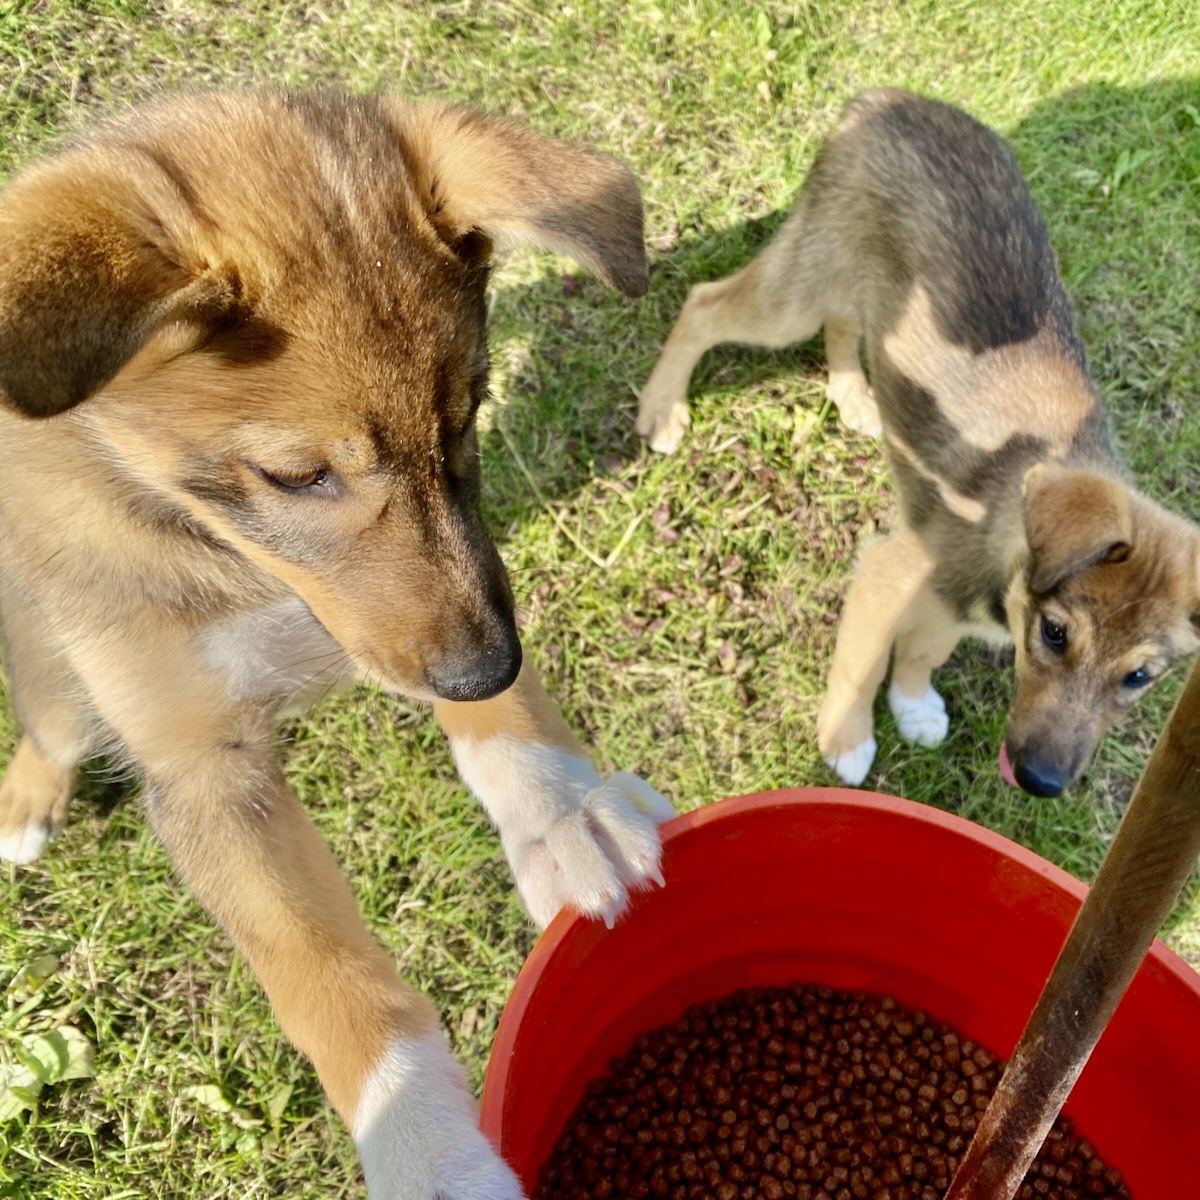 A sled dog puppy stands with her paws on the rim of a bucket full of kibble while another puppy looks on curiously